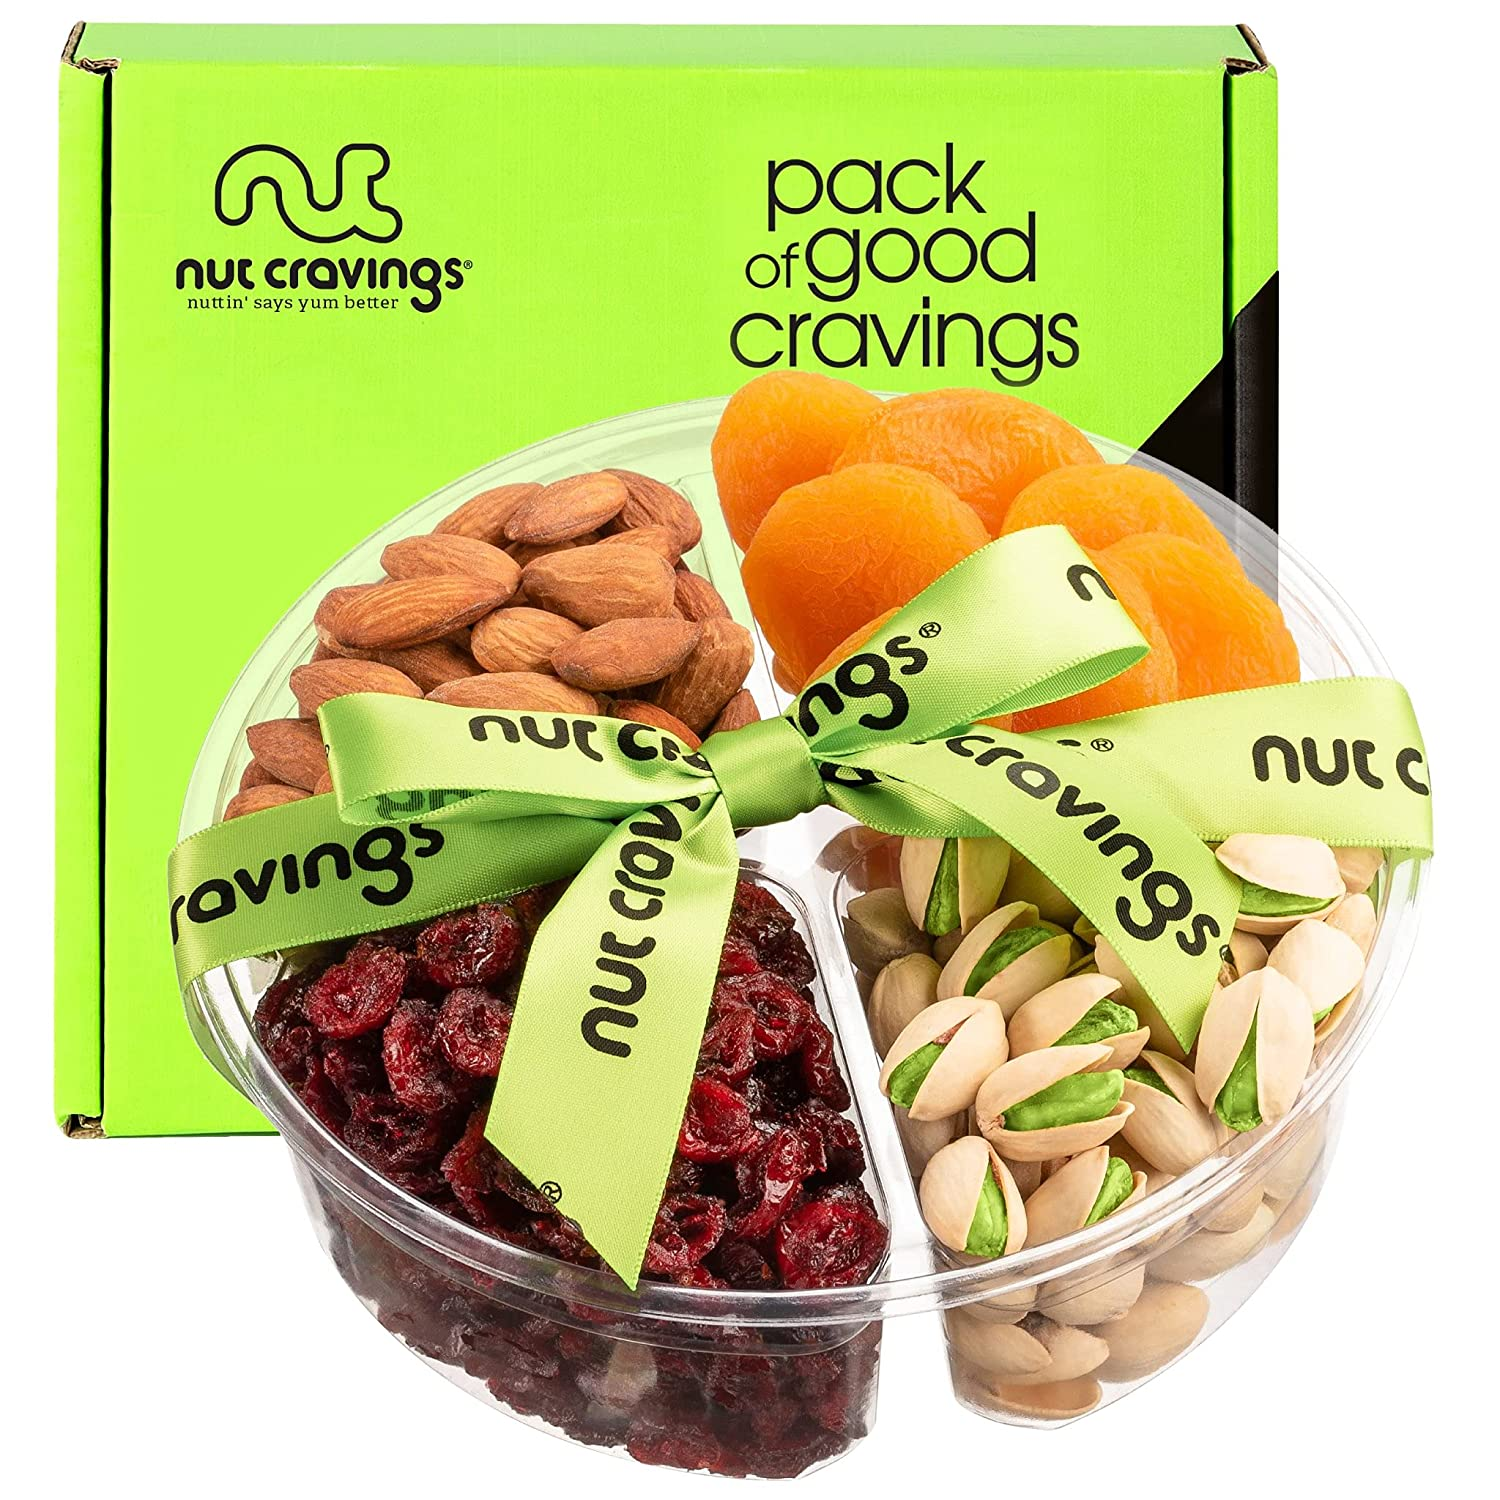 Dried Fruit & Nut Gift Basket + Green Ribbon (4 Piece Assortment) - Fathers Day Prime Arrangement Platter, Birthday Care Package Variety, Healthy Food Tray, Kosher Snack Box for Mom, Women, Men, Adult